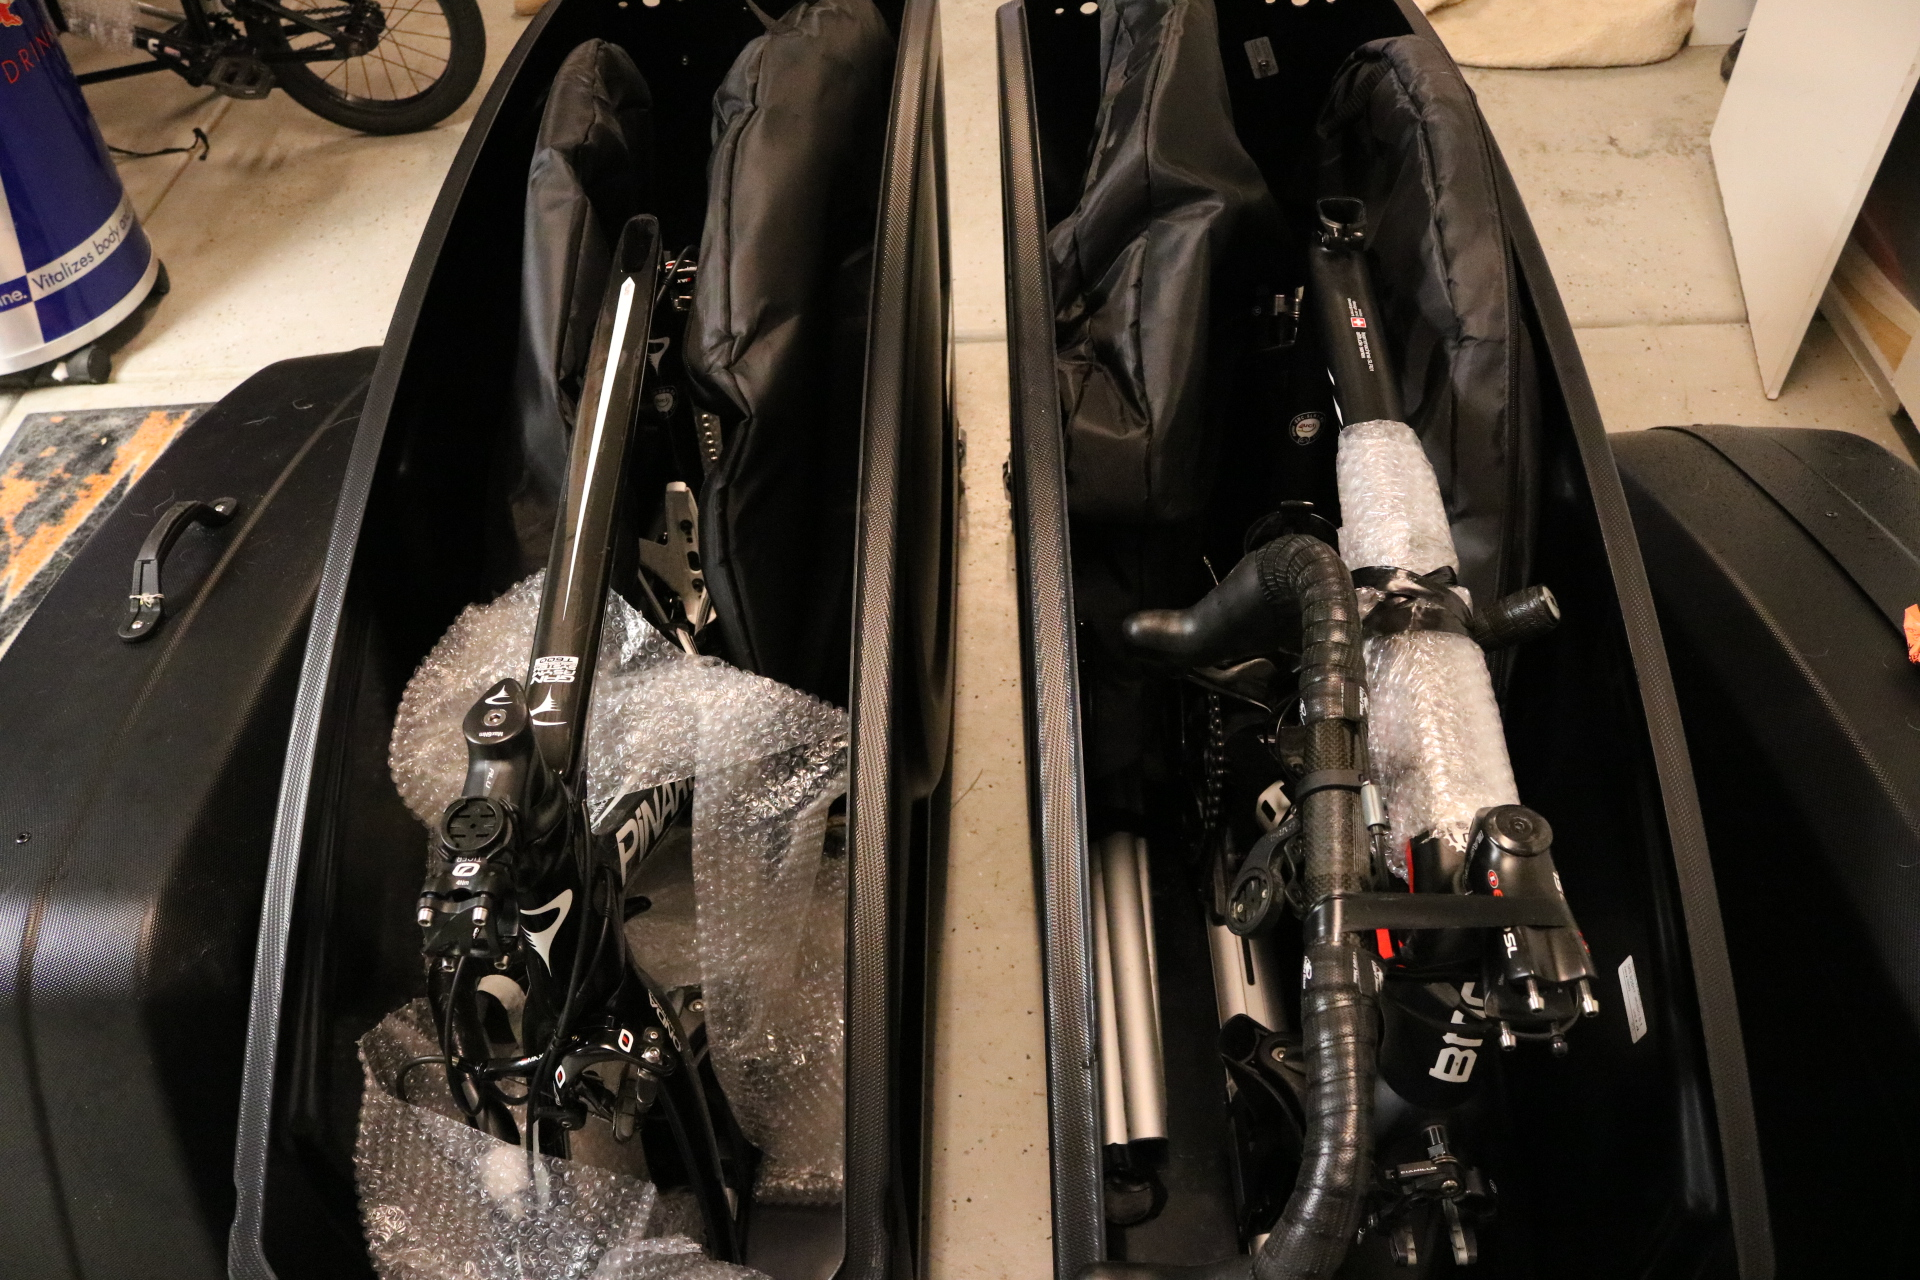 Sarah's Pinarello and my BMC packed for the trip